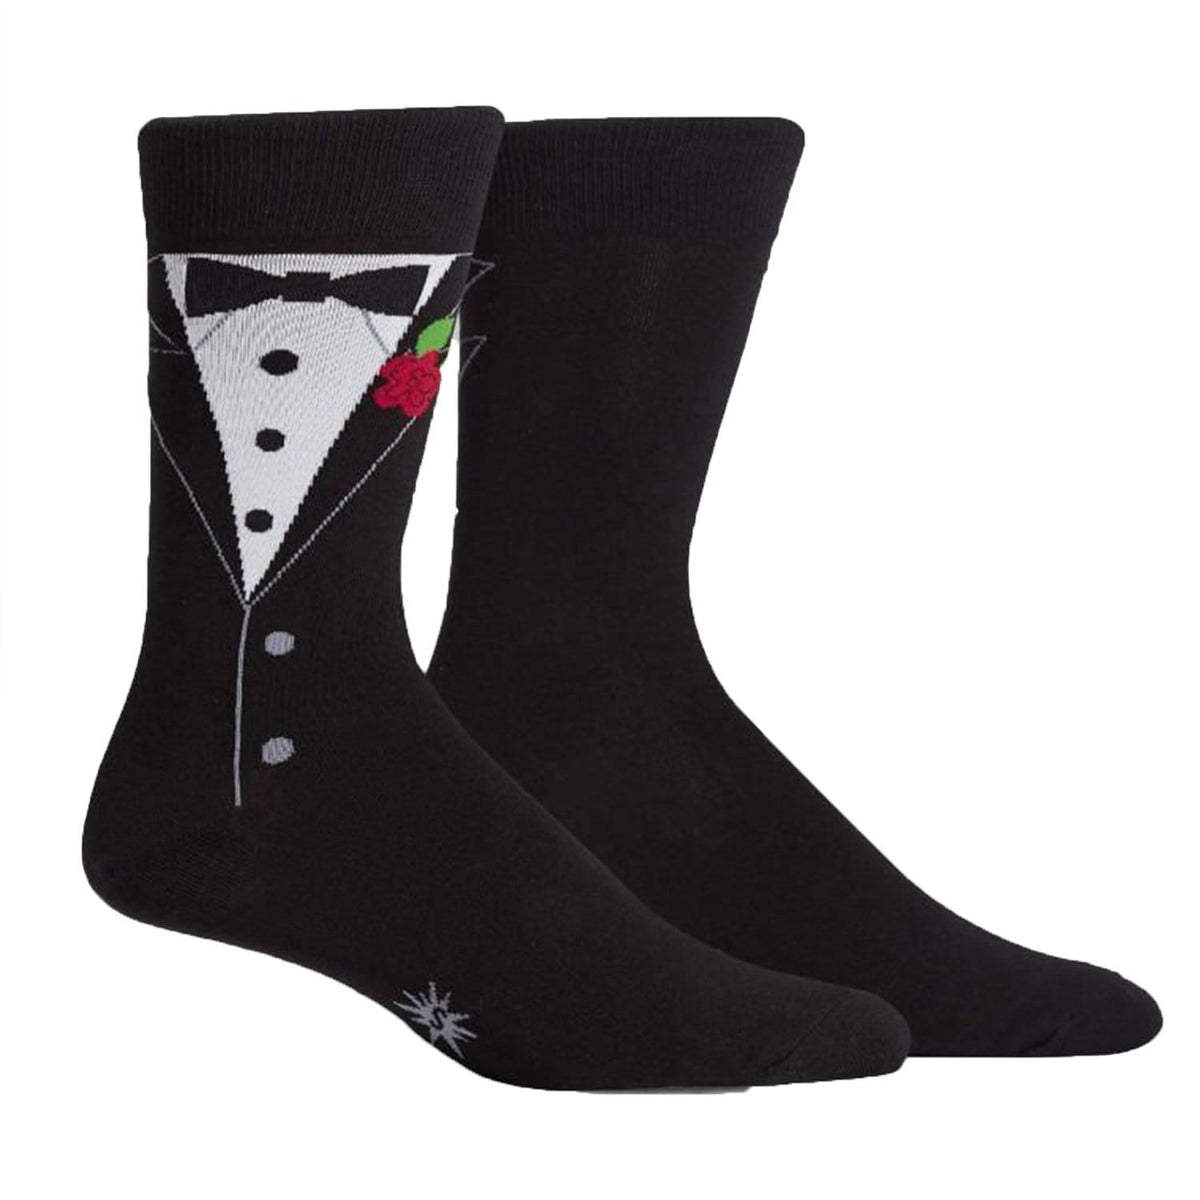 Black Tie Affair Crew Socks Crew Sock